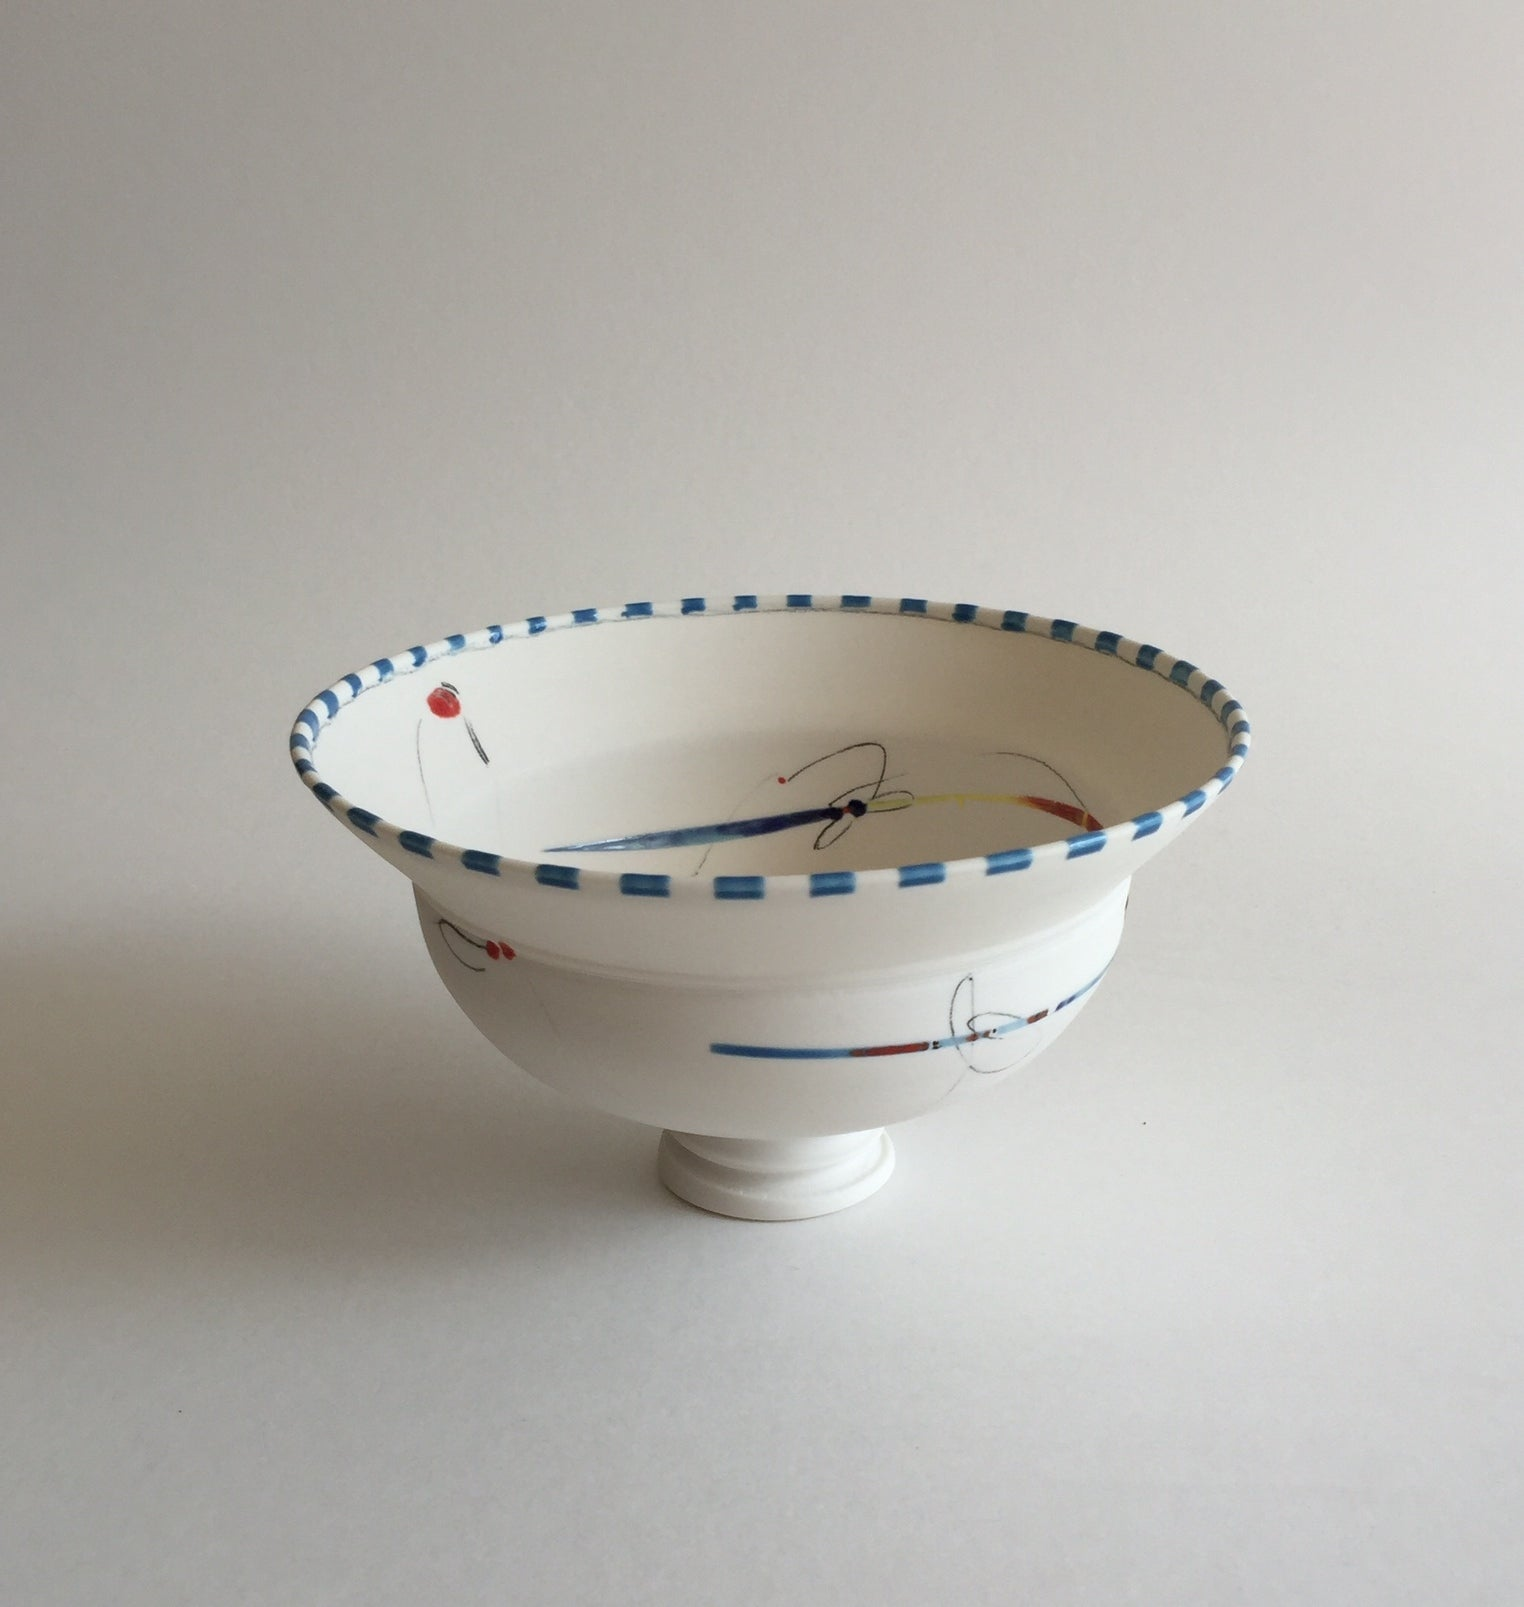 files/VG_14_Bowl_with_spiral_cut_base_blue_checkered_rim_-_Porcelain_Coloured_Glaze_ceramic_Pencil_imagery.jpg